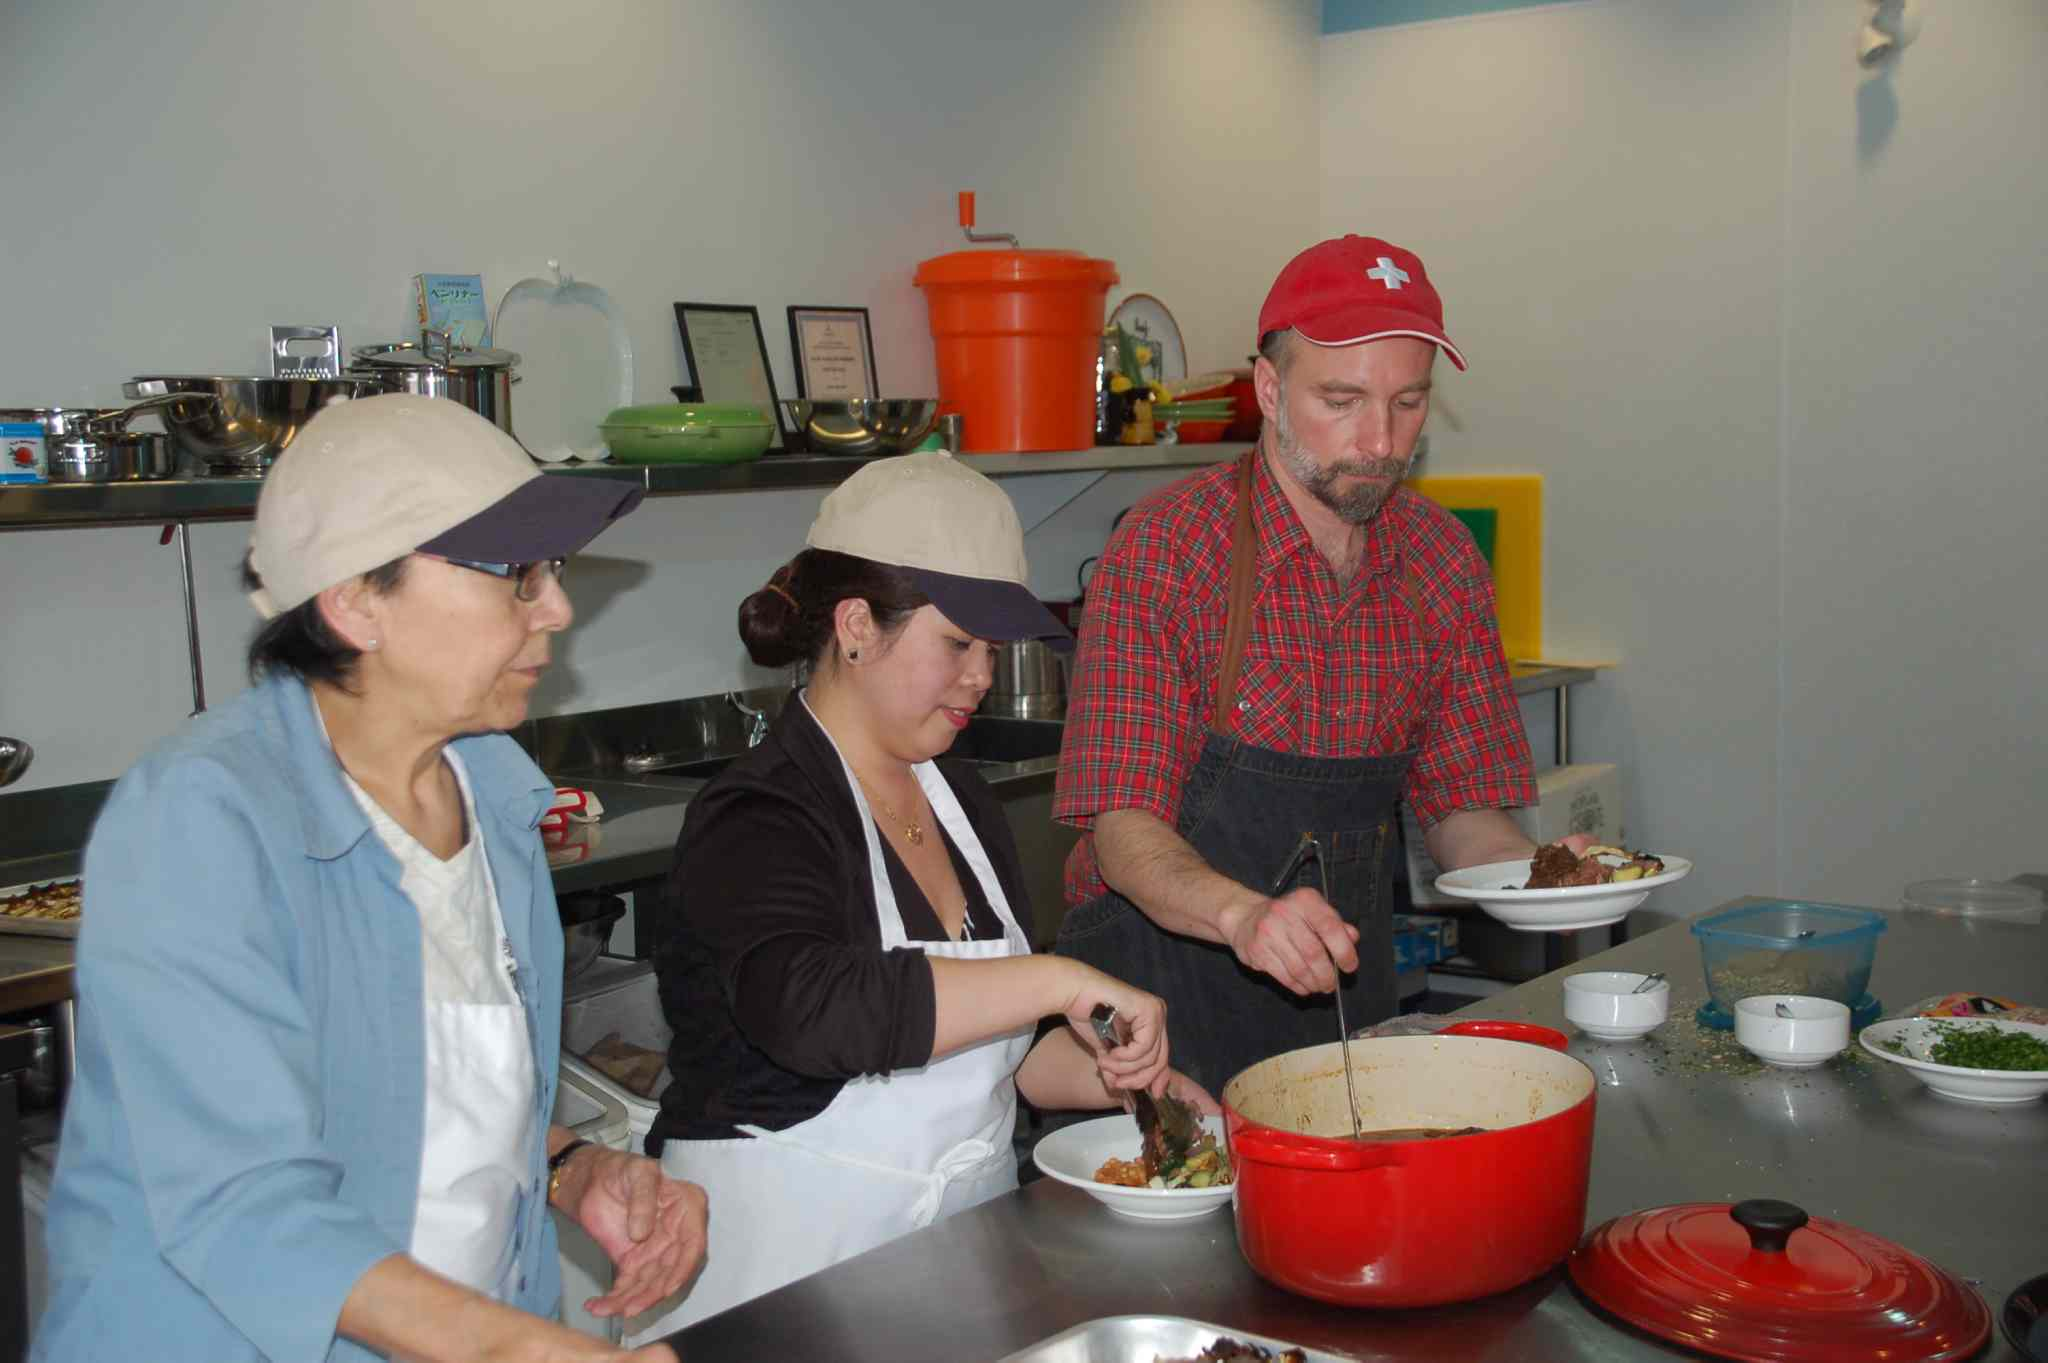 Community volunteers (left to right) Sharon Czuba, Abby Legaspi and Grant Mitchell serve a lunch of beef, beans, rice pilaf and zucchini at the official opening of the NorWest Co-op Community Food Centre on March 13.